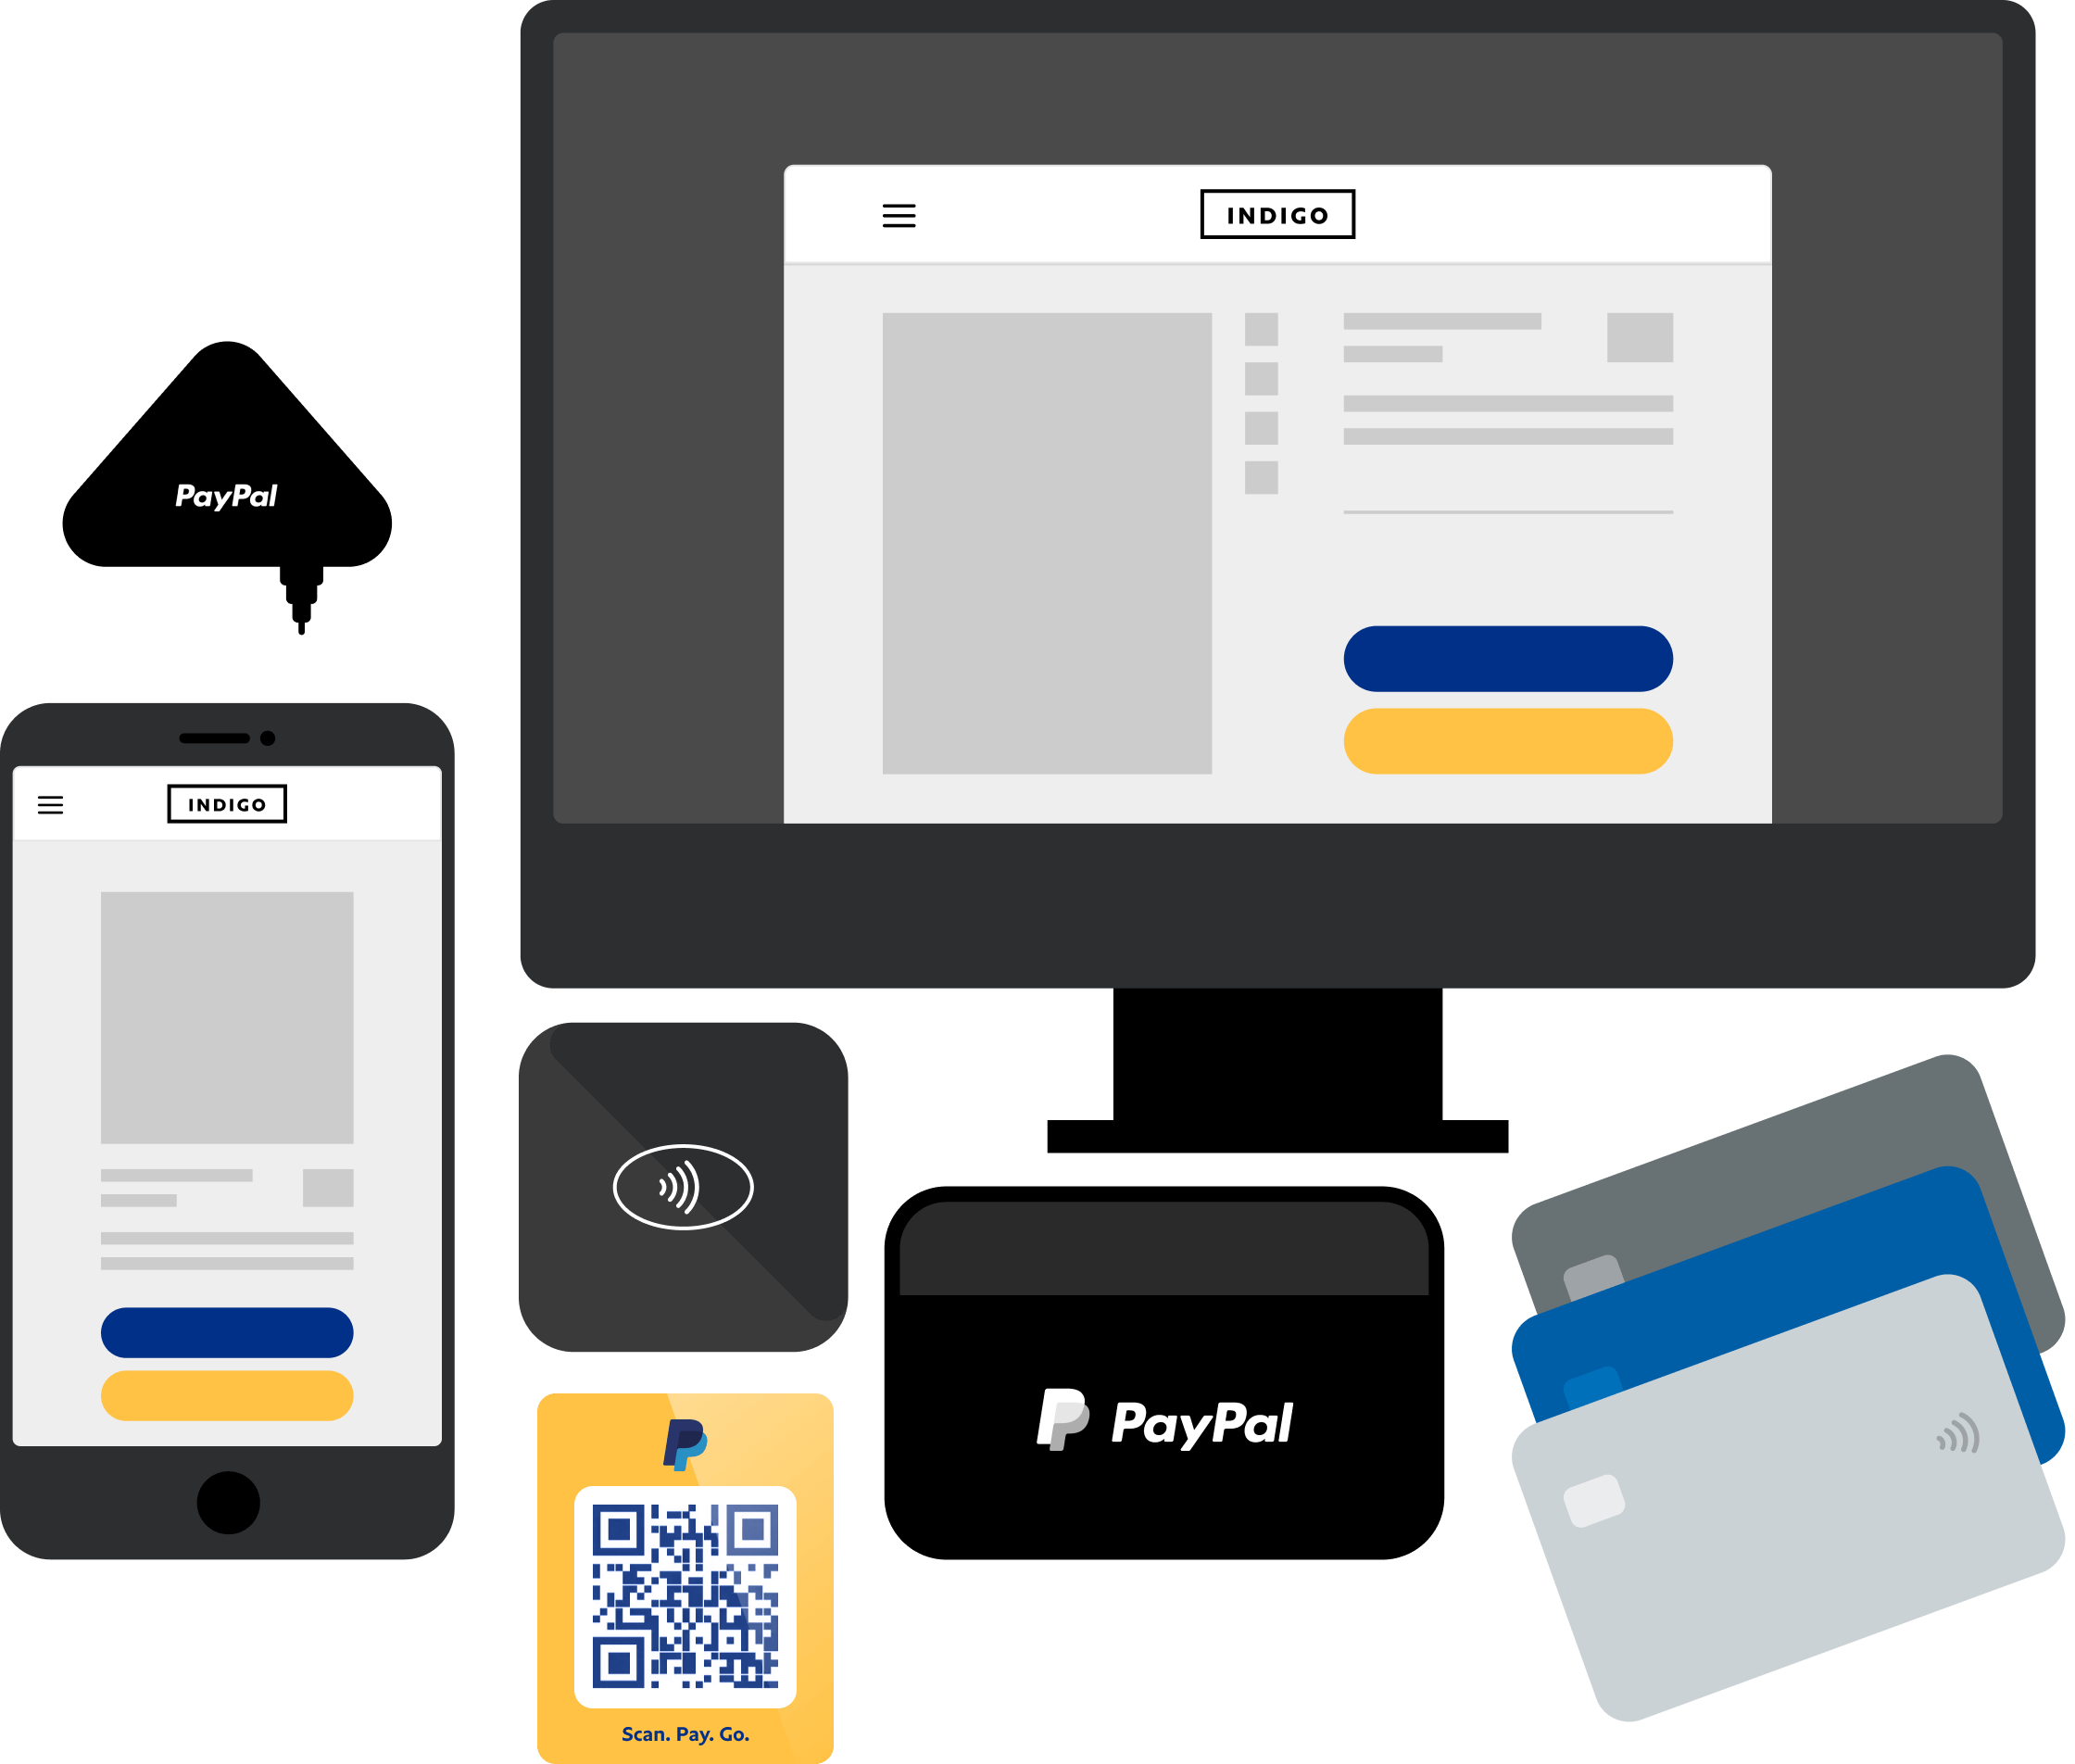 An illustration that represents different ways a business can get paid with PayPal including PayPal Checkout, QR codes, and e-invoices